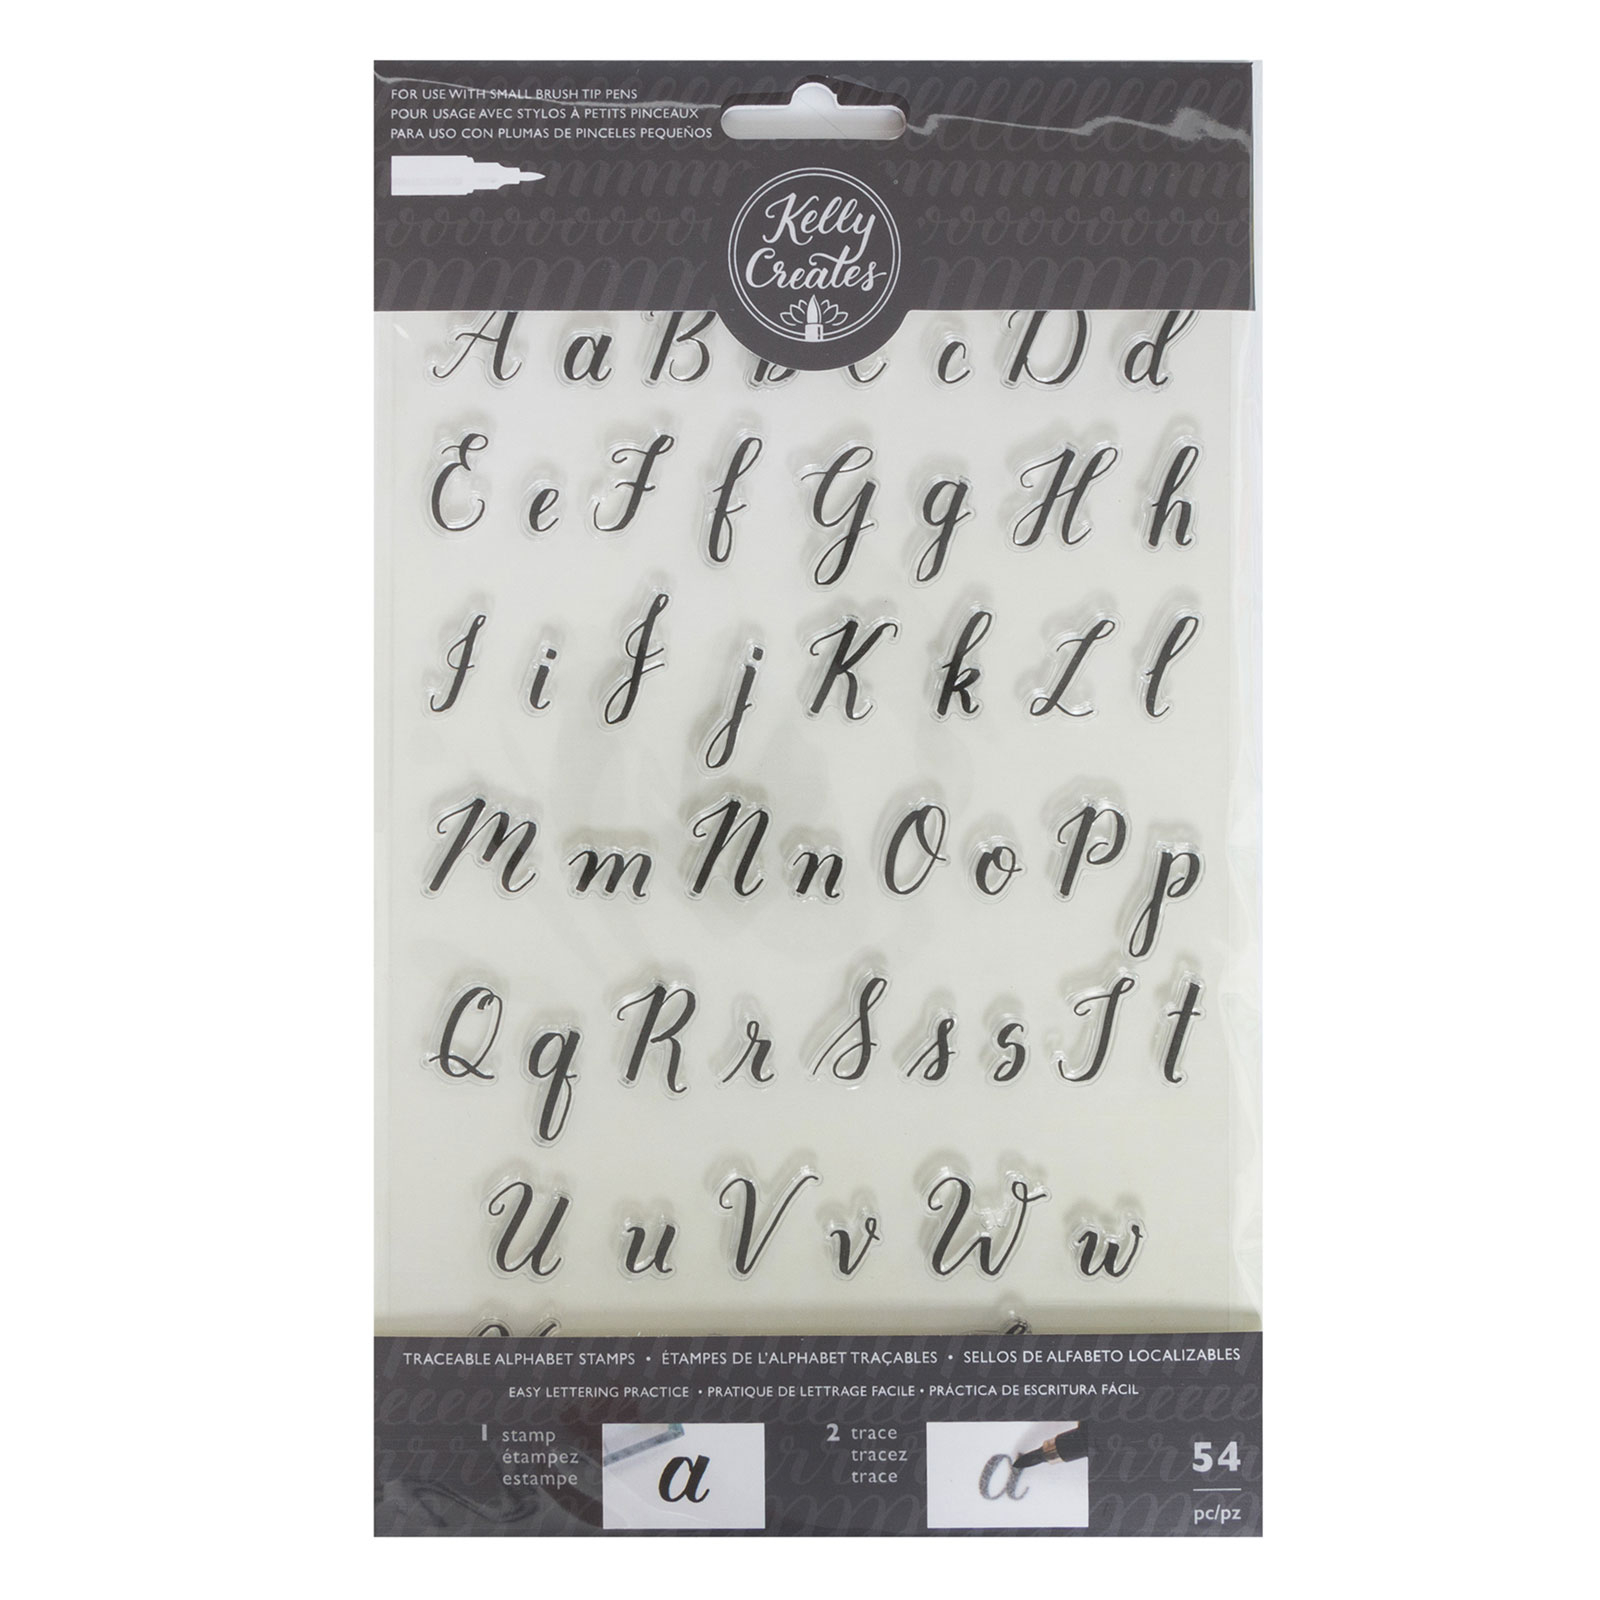 Stamp And Trace Collection for Alphabet Tracing Stamps